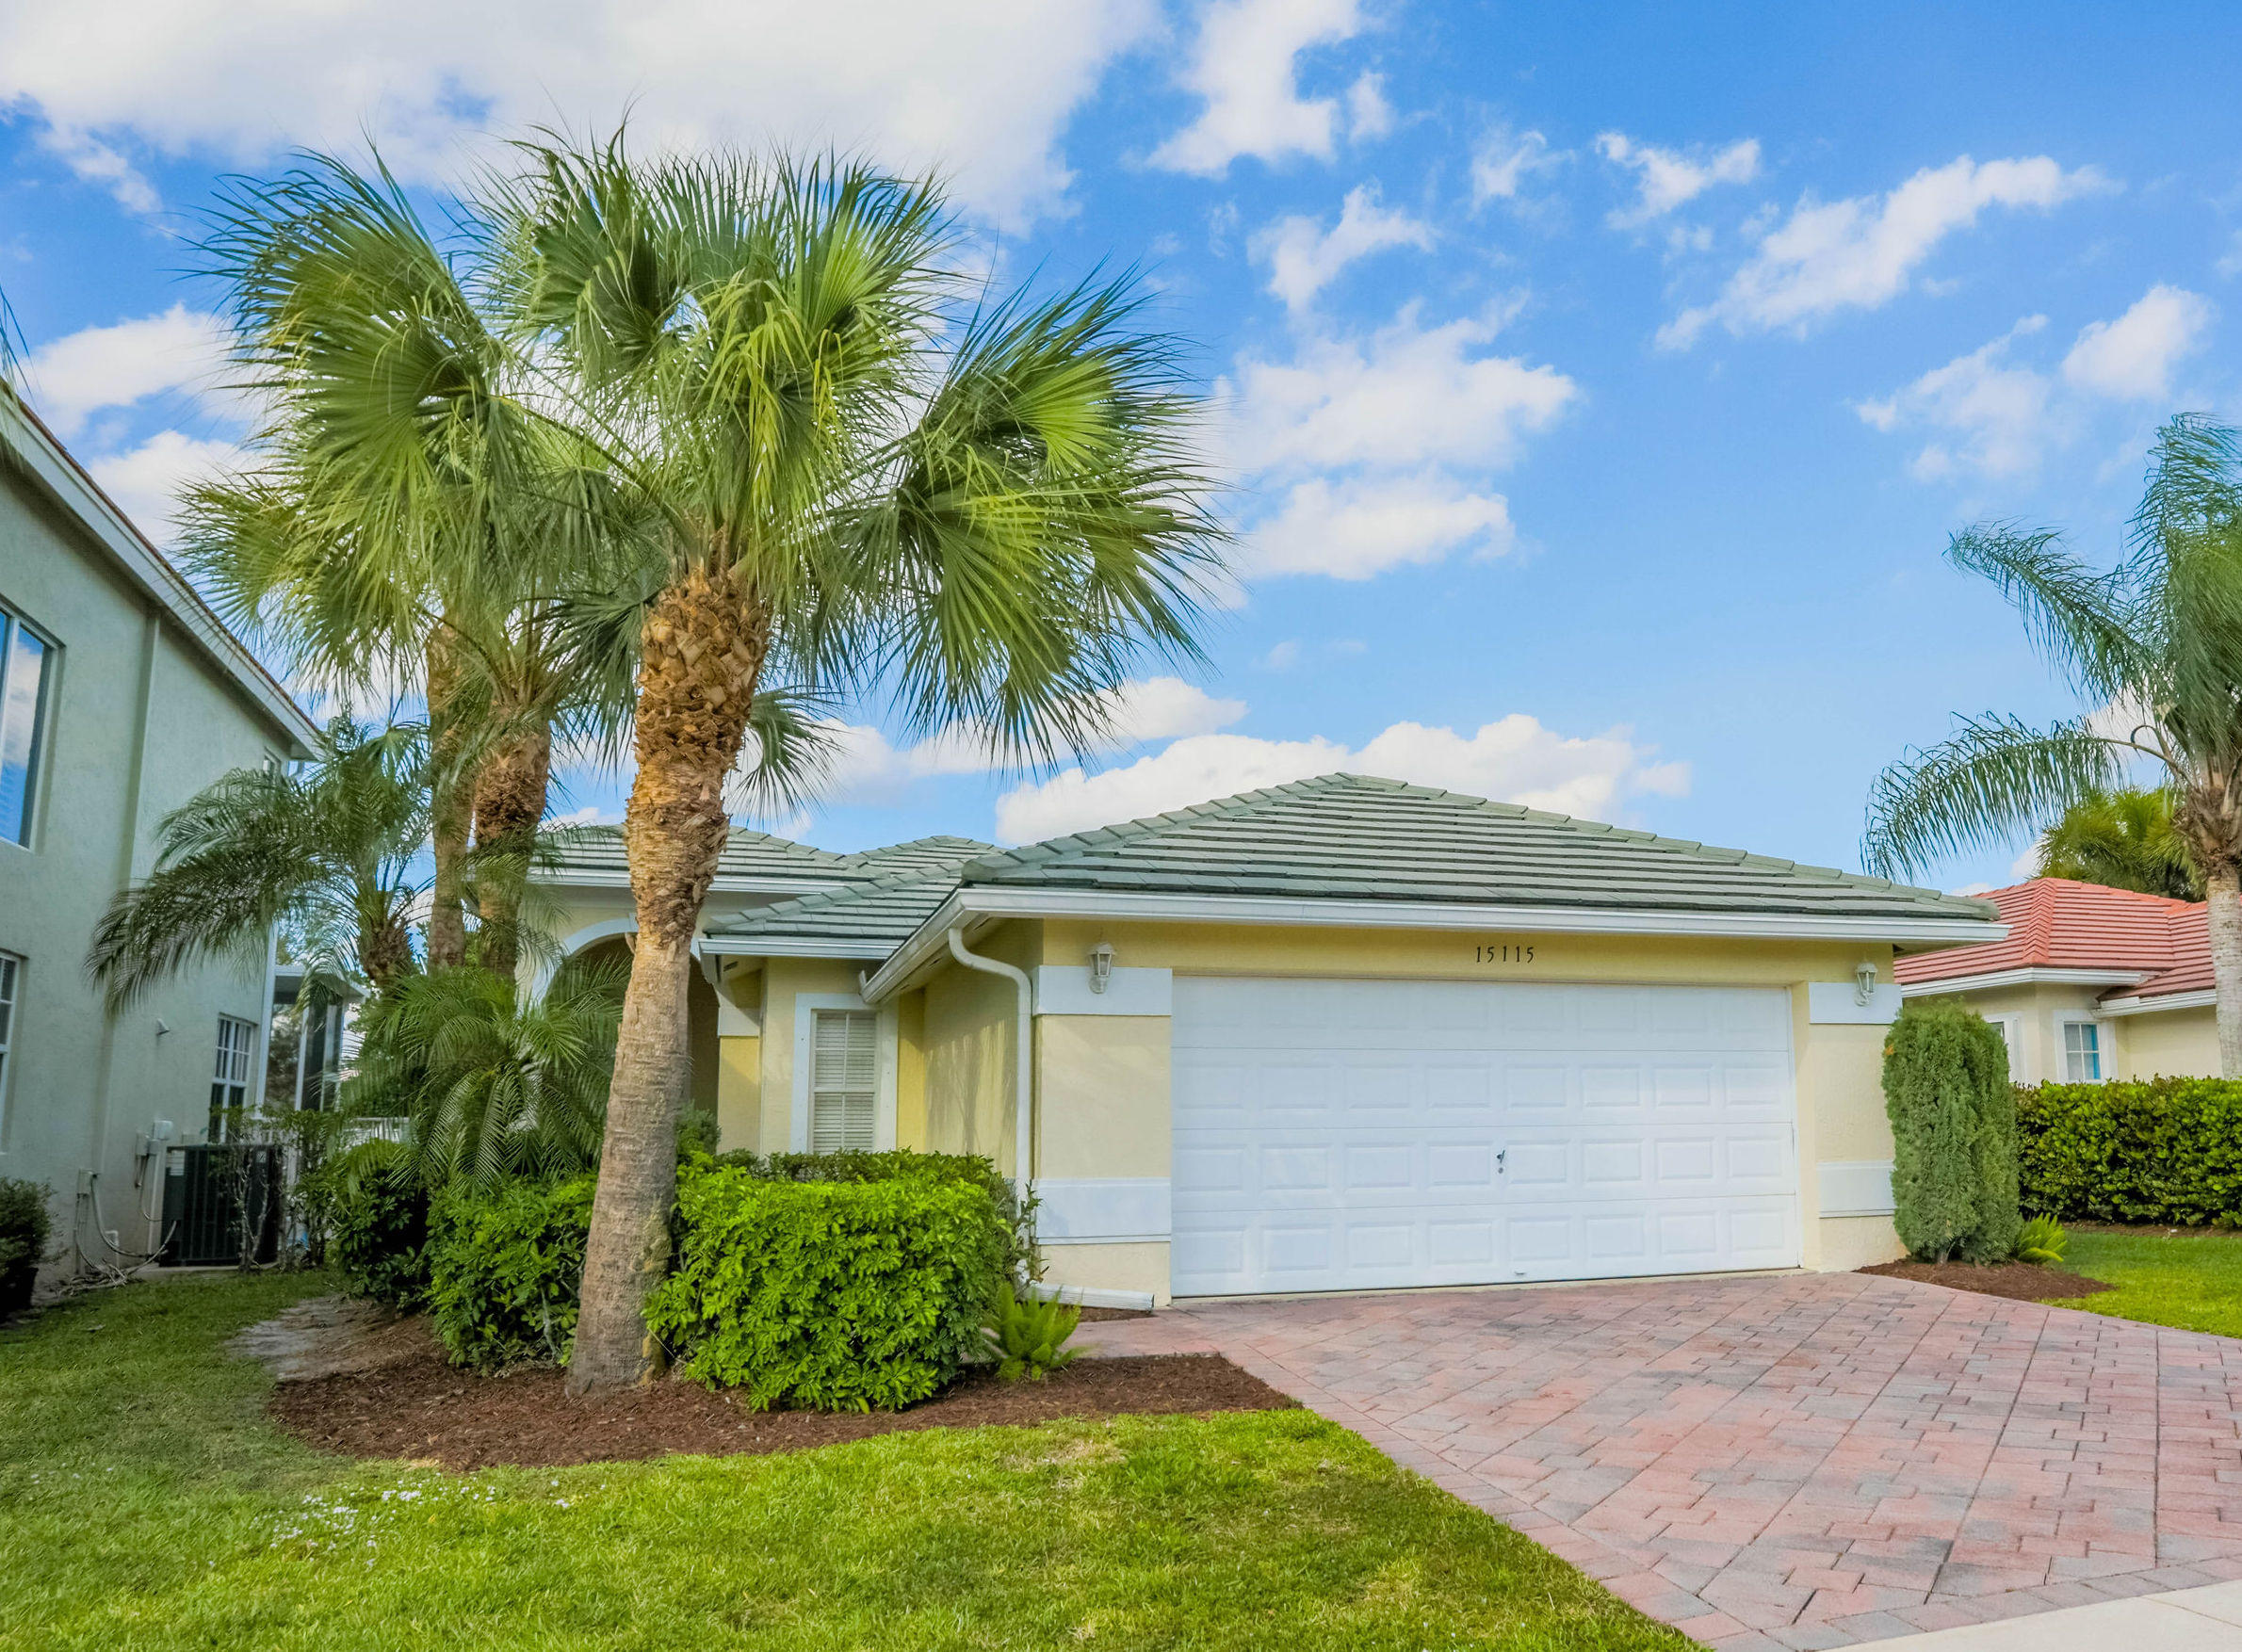 15115 Banbury Way, Wellington, FL 33414